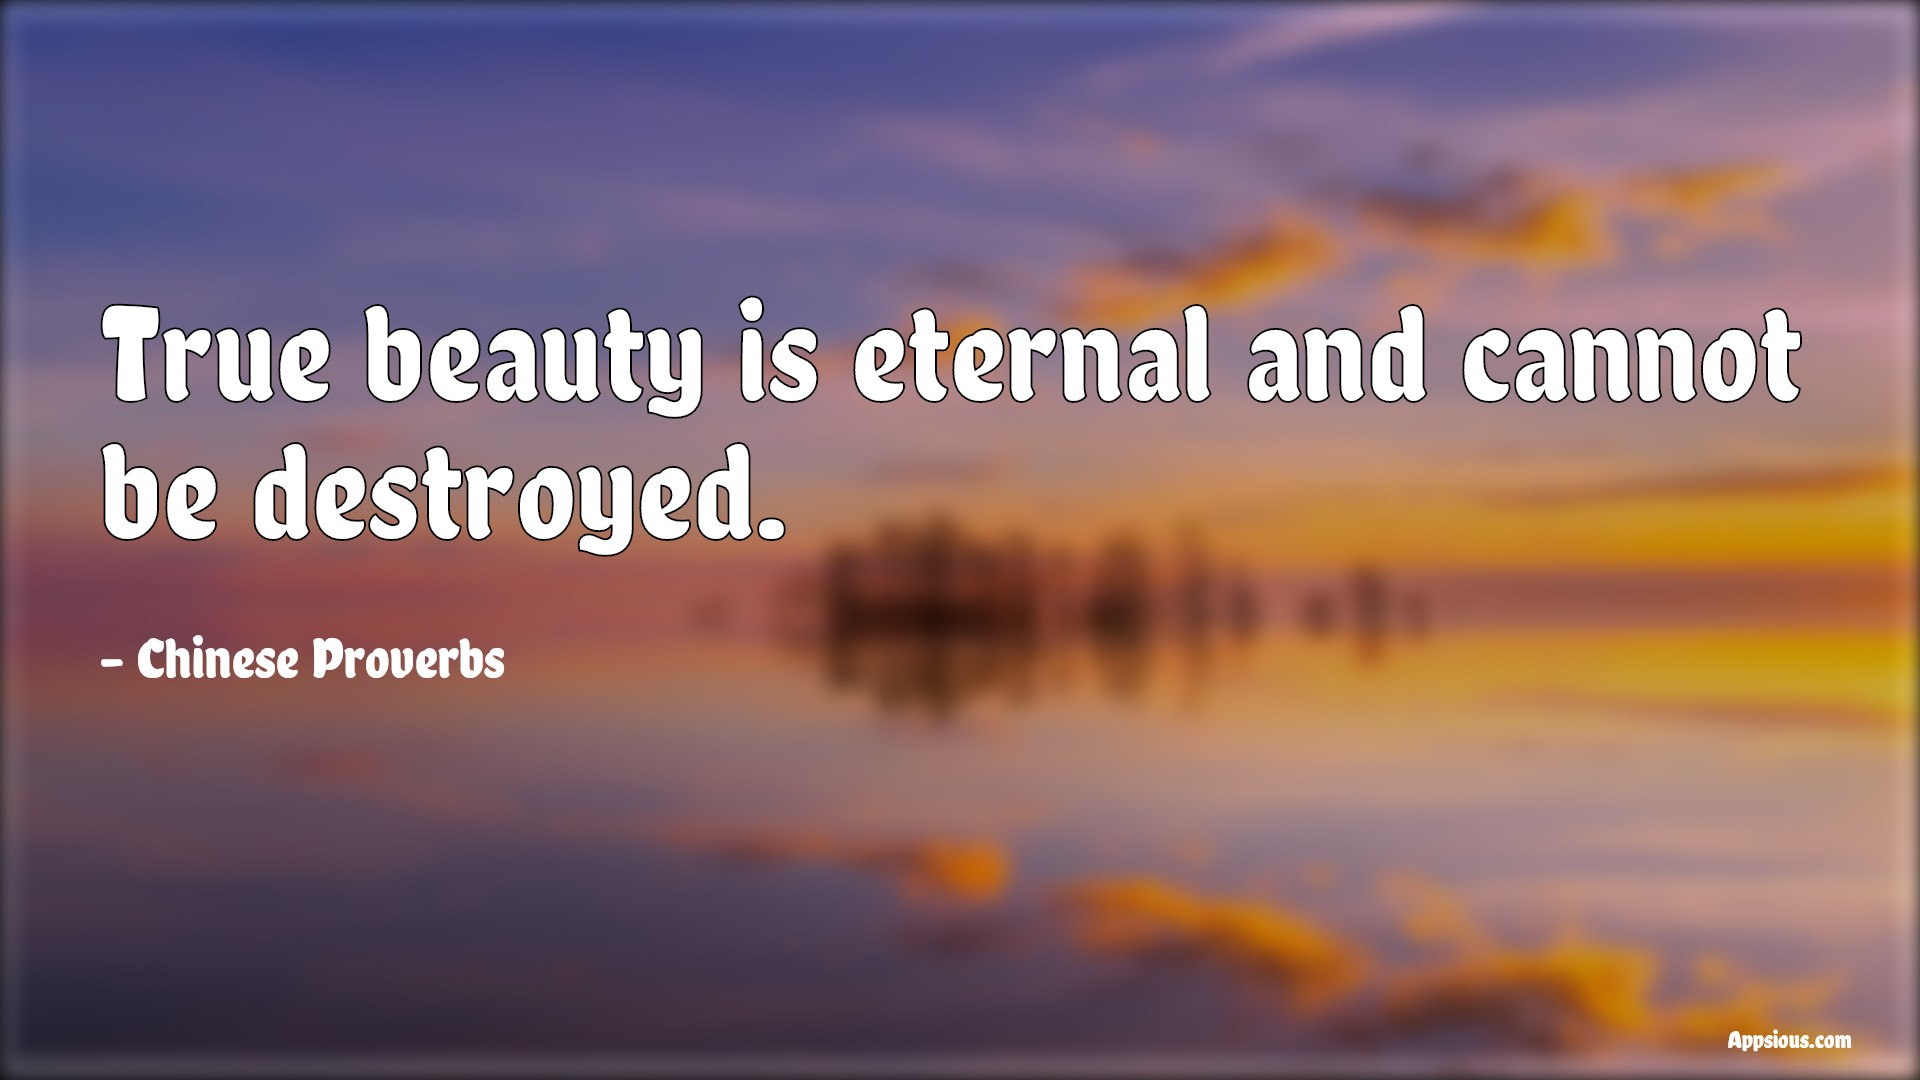 True beauty is eternal and cannot be destroyed.